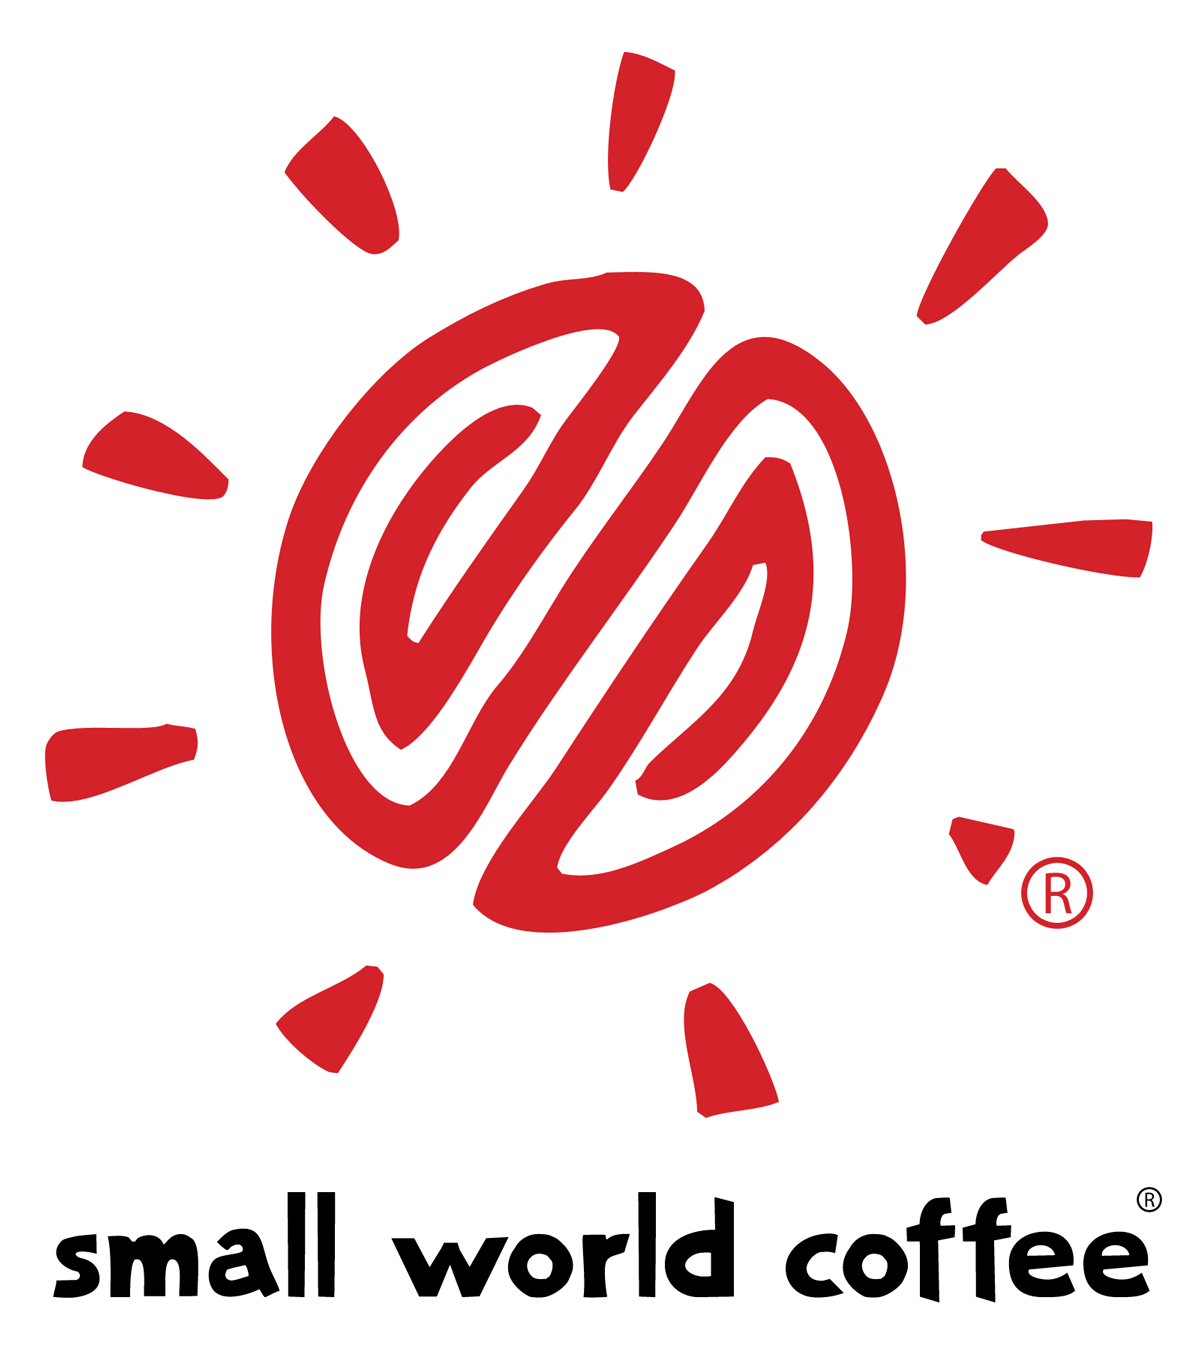 SWC-Logo-And-Name-1200x1350.png